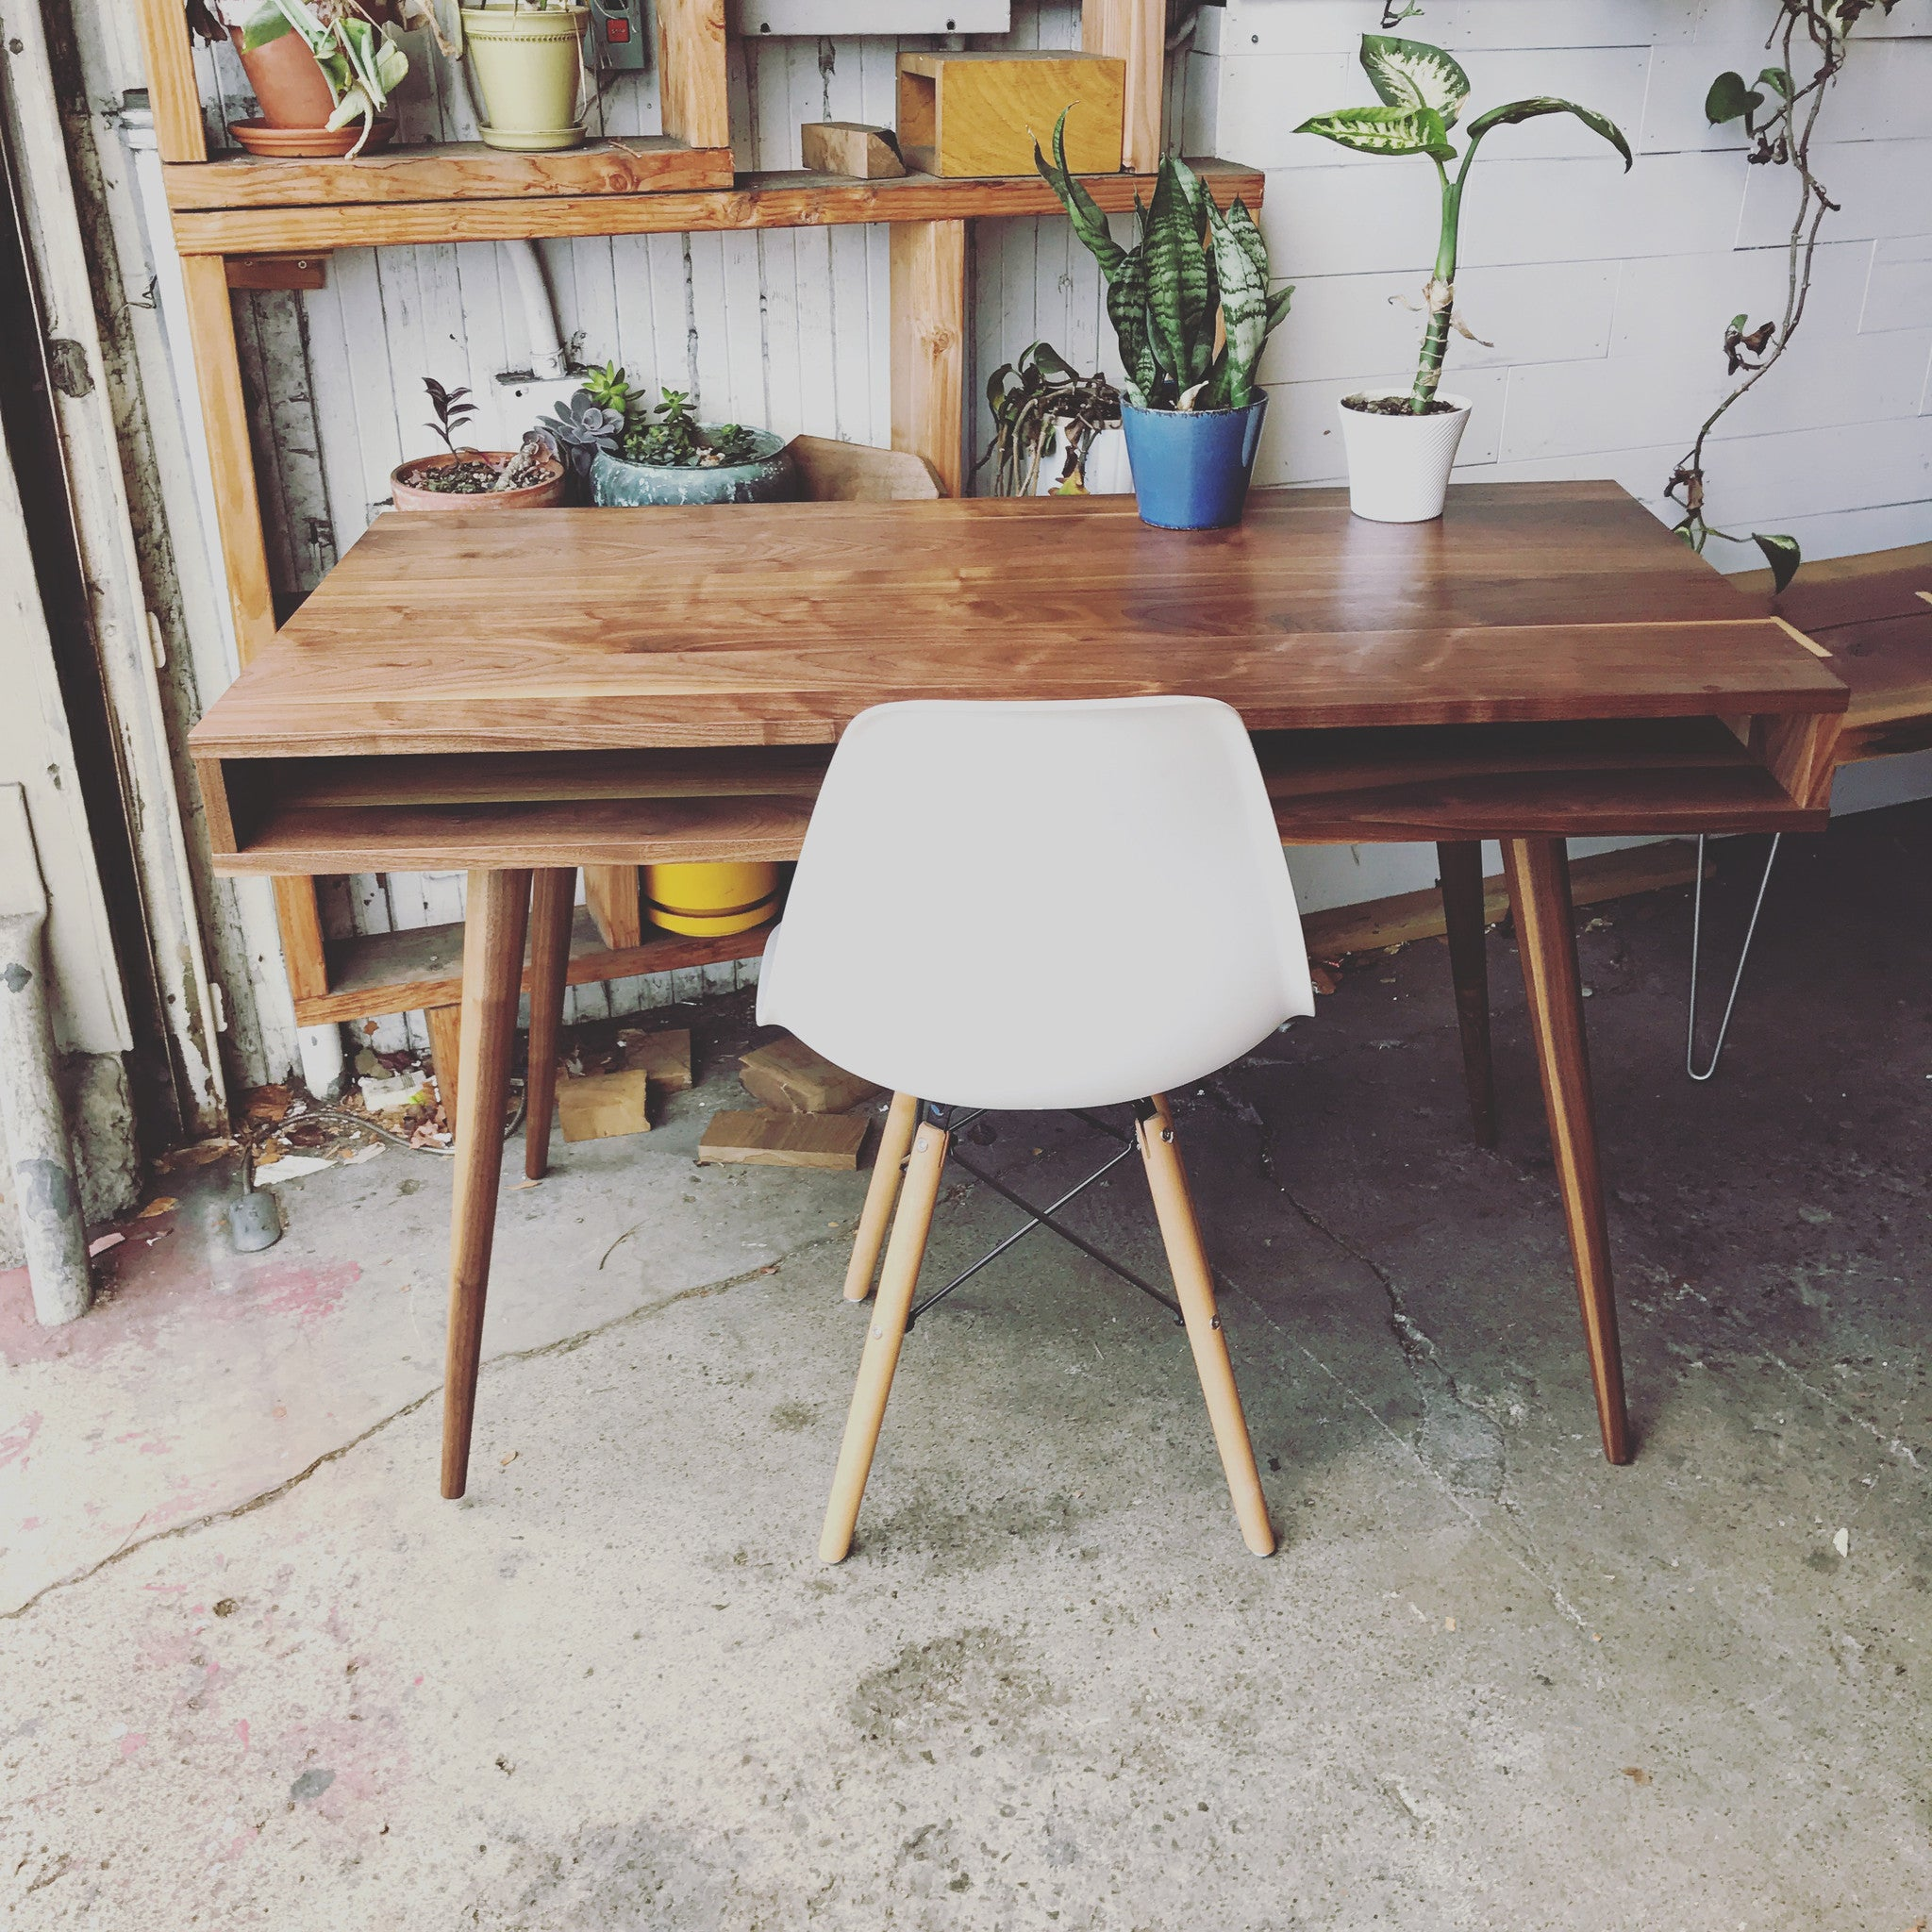 Open Mid Century Modern Desk - JeremiahCollection - 1